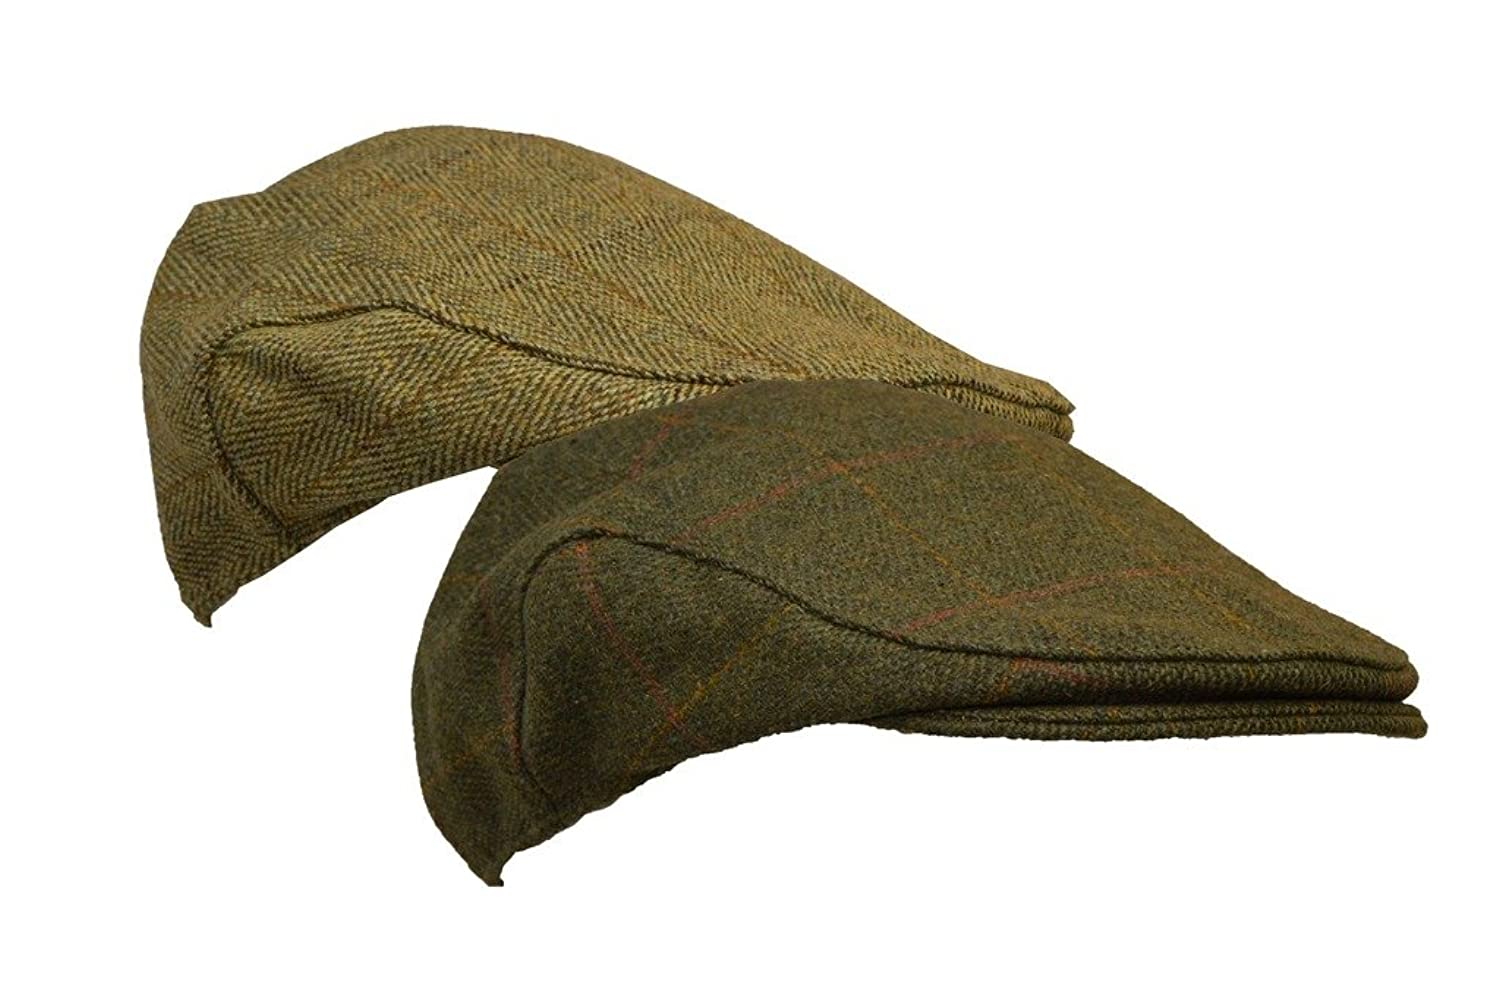 Men's Vintage Style Hats Mens Derby Tweed Flat Cap Hunting Shooting Countrywear Hat $22.02 AT vintagedancer.com